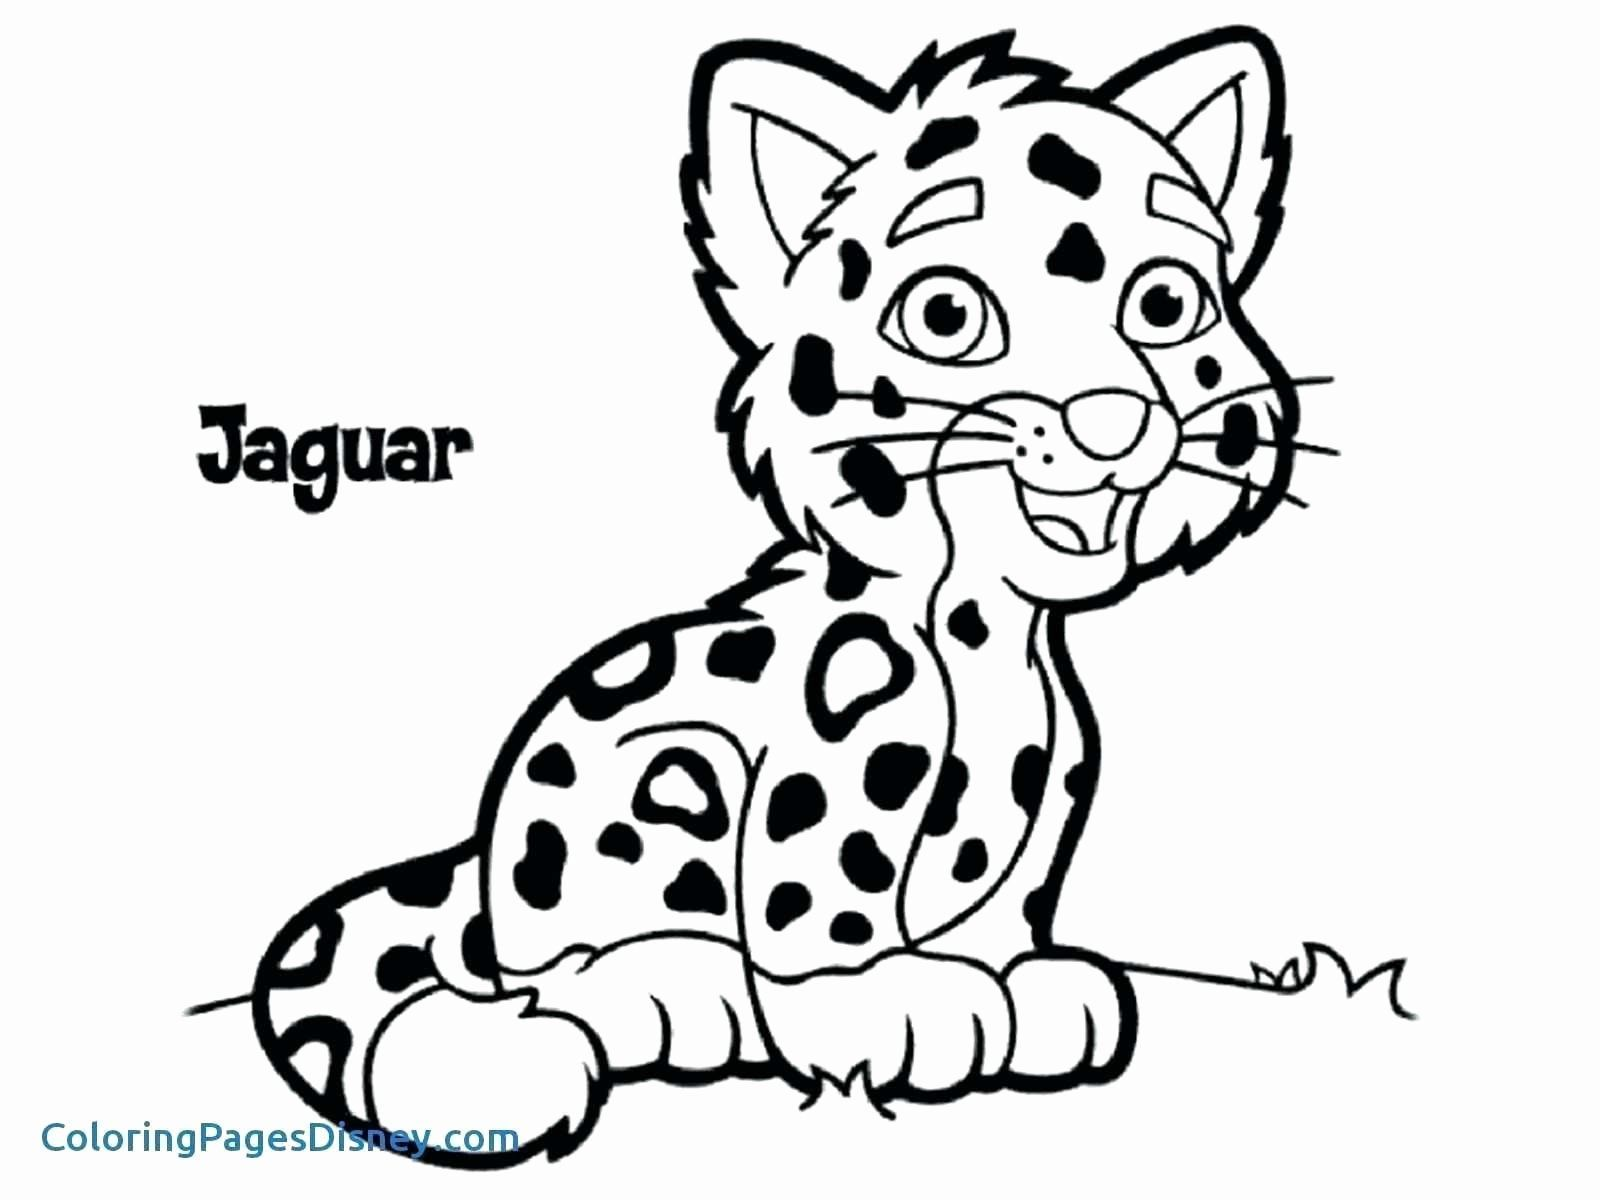 Cute Cartoon Animal Coloring Pages Elegant Cheetah Coloring Pages For Adults Navajosheet Anima In 2021 Animal Coloring Pages Bear Coloring Pages Cartoon Coloring Pages